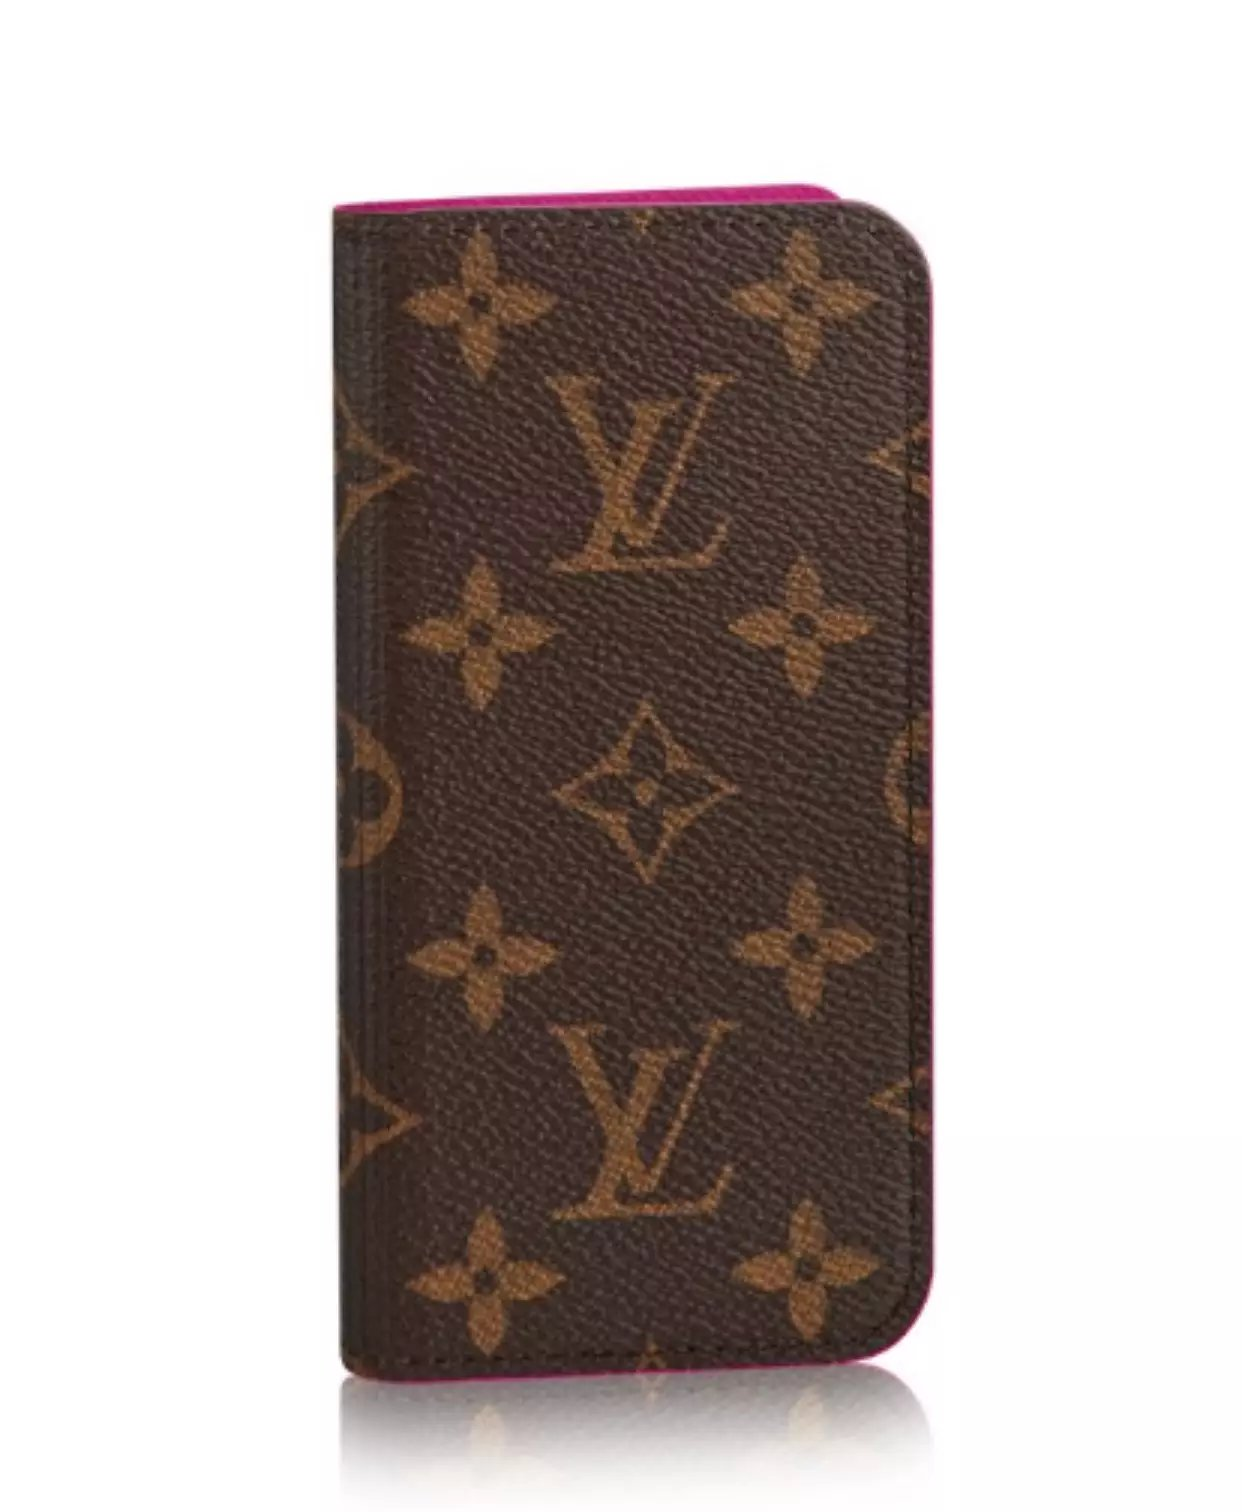 iphone 8 full cover iphone 8 fashion cases Louis Vuitton iphone 8 case iphones covers and cases mobile phone case shop mobile phone covers apple phone cases phone caes custom iphone 8 cases